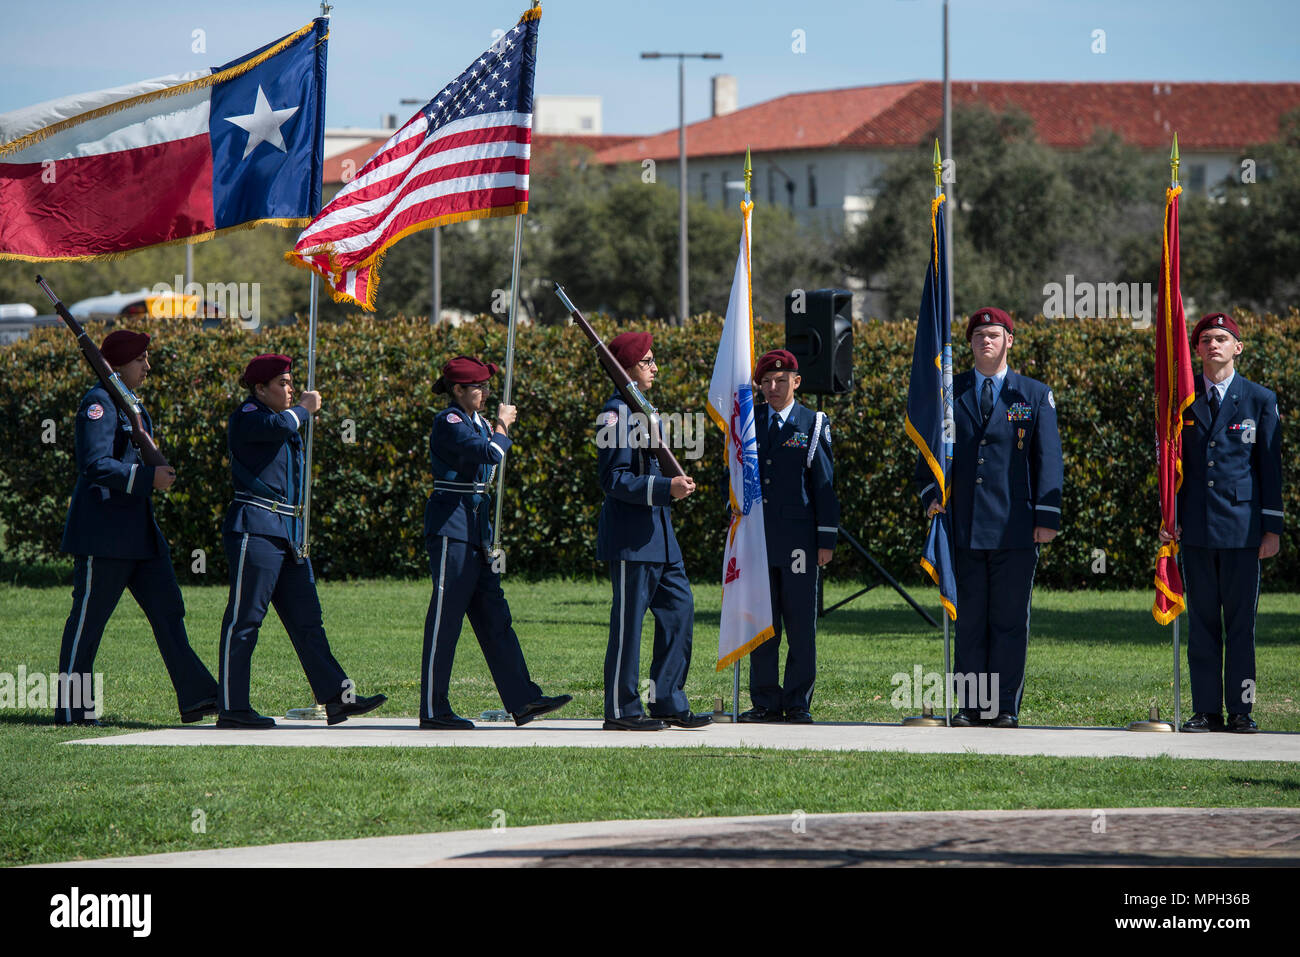 Members of Floresvillie High School Air Force JROTC present the colors at an event honoring Benjamin Foulois March 2, 2017 at Joint Base San Antonio-Fort Sam Houston. Foulois is credited with completing the first military flight in December 1910. (U.S. Air Force photo by Senior Airman Stormy Archer) - Stock Image